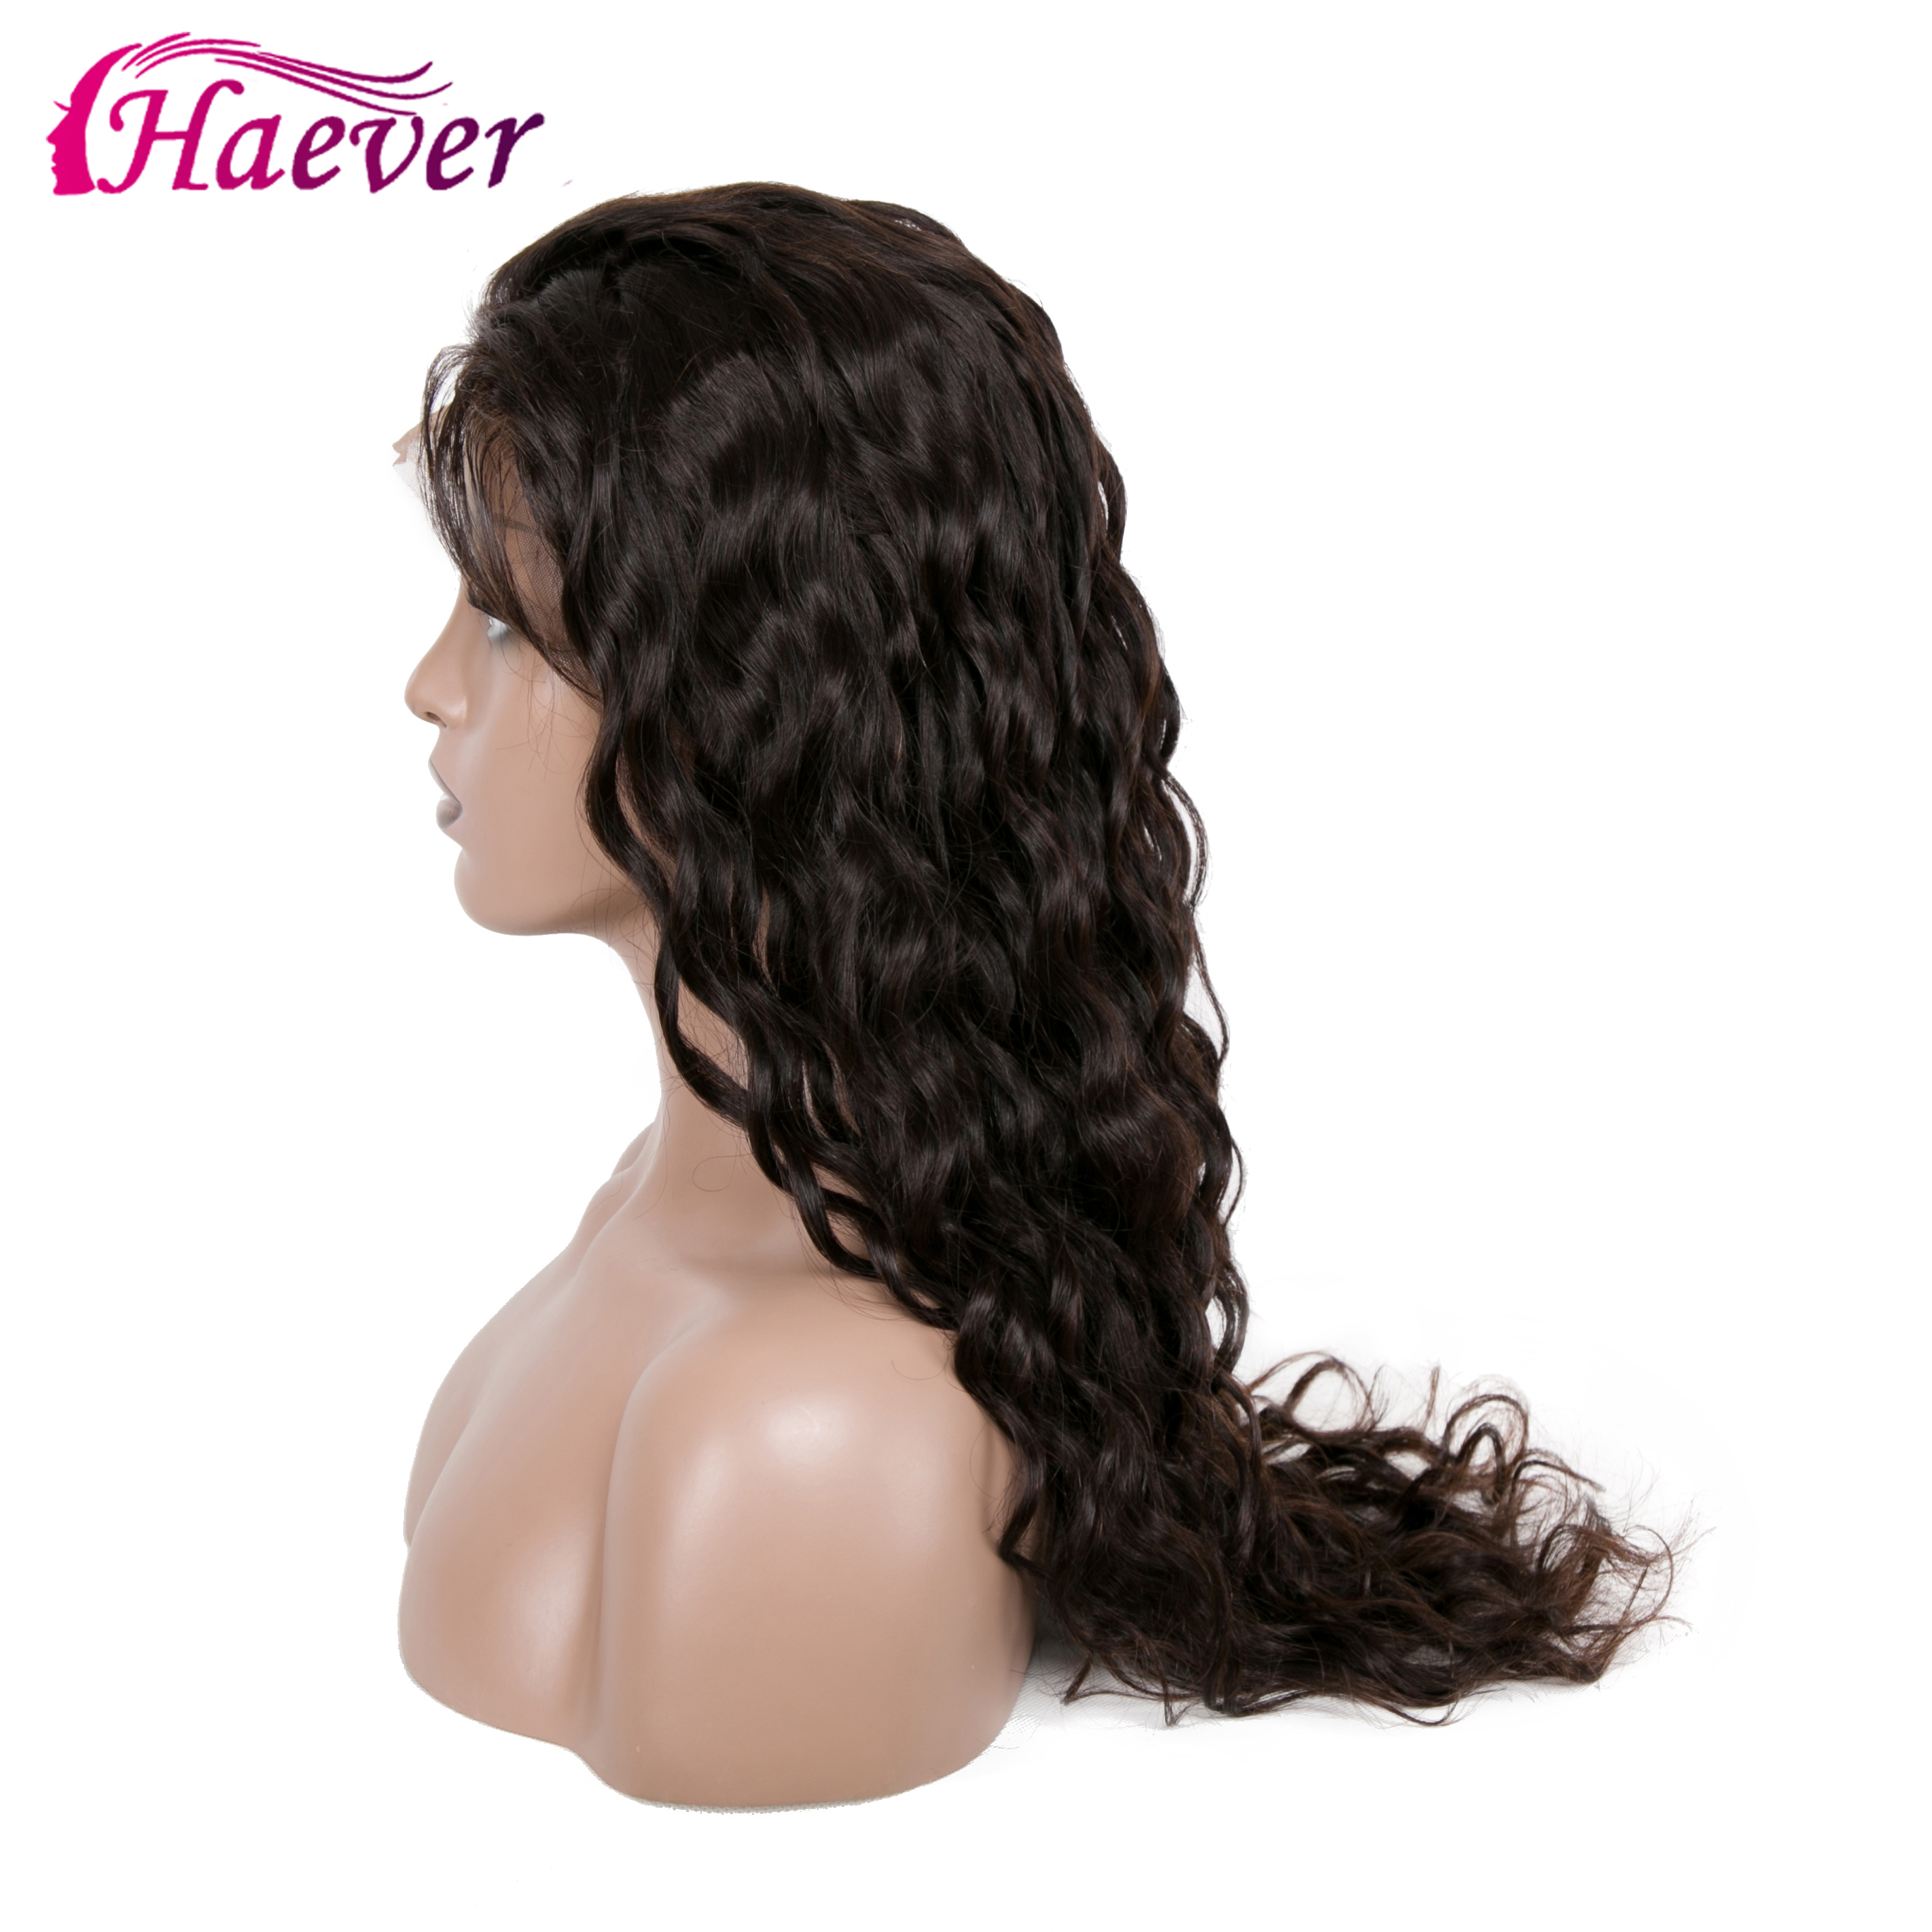 Haever 180 Density Brazilian Water Wave Wigs Lace Front Human Hair Wig PrePlucked 13x4 For Black Women New Hair Remy Brazilian